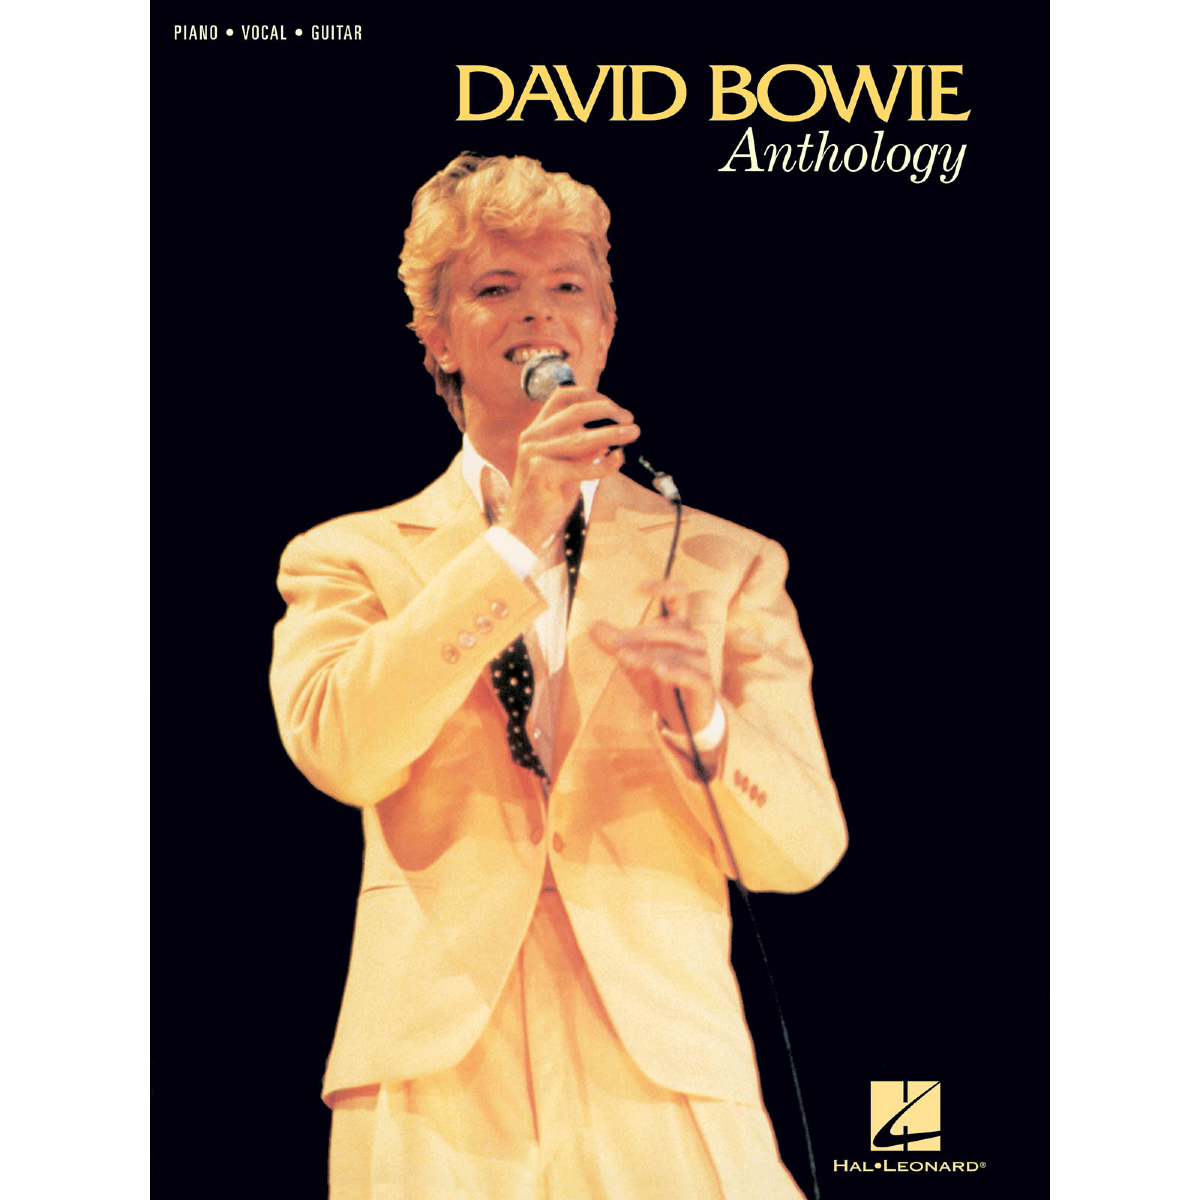 David Bowie Anthology  - Piano/Vocal/Guitar Artist Songbook